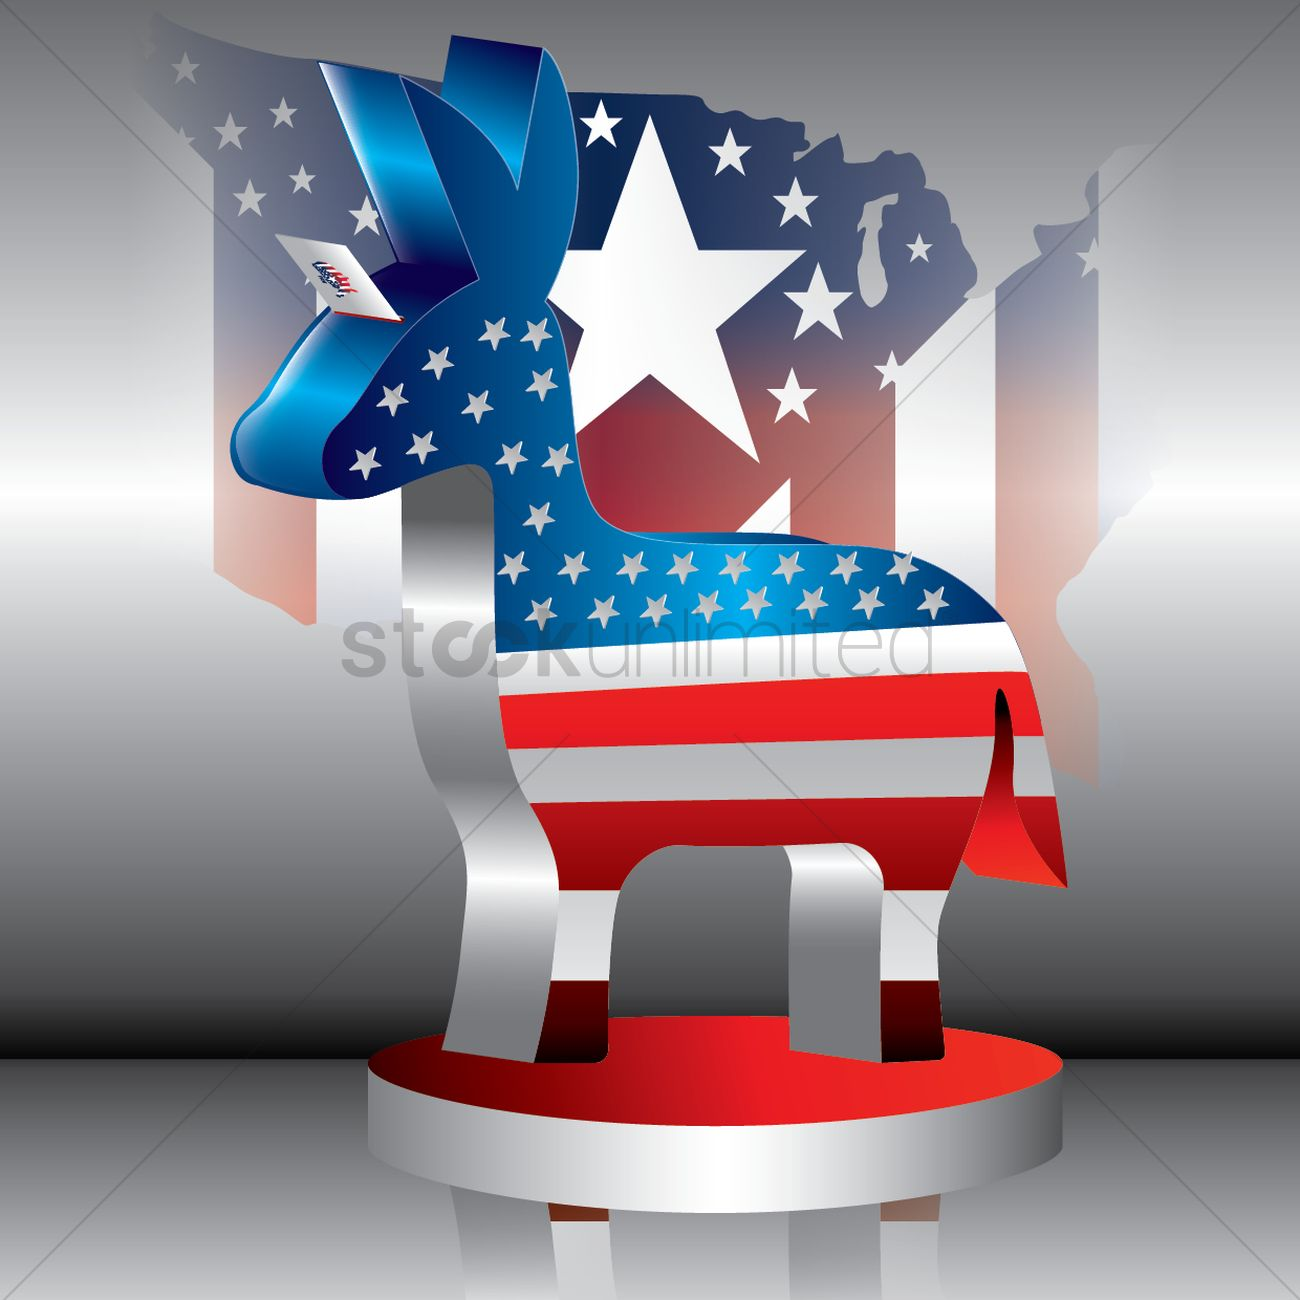 Democratic party symbol vector image 1534862 stockunlimited democratic party symbol vector graphic biocorpaavc Image collections